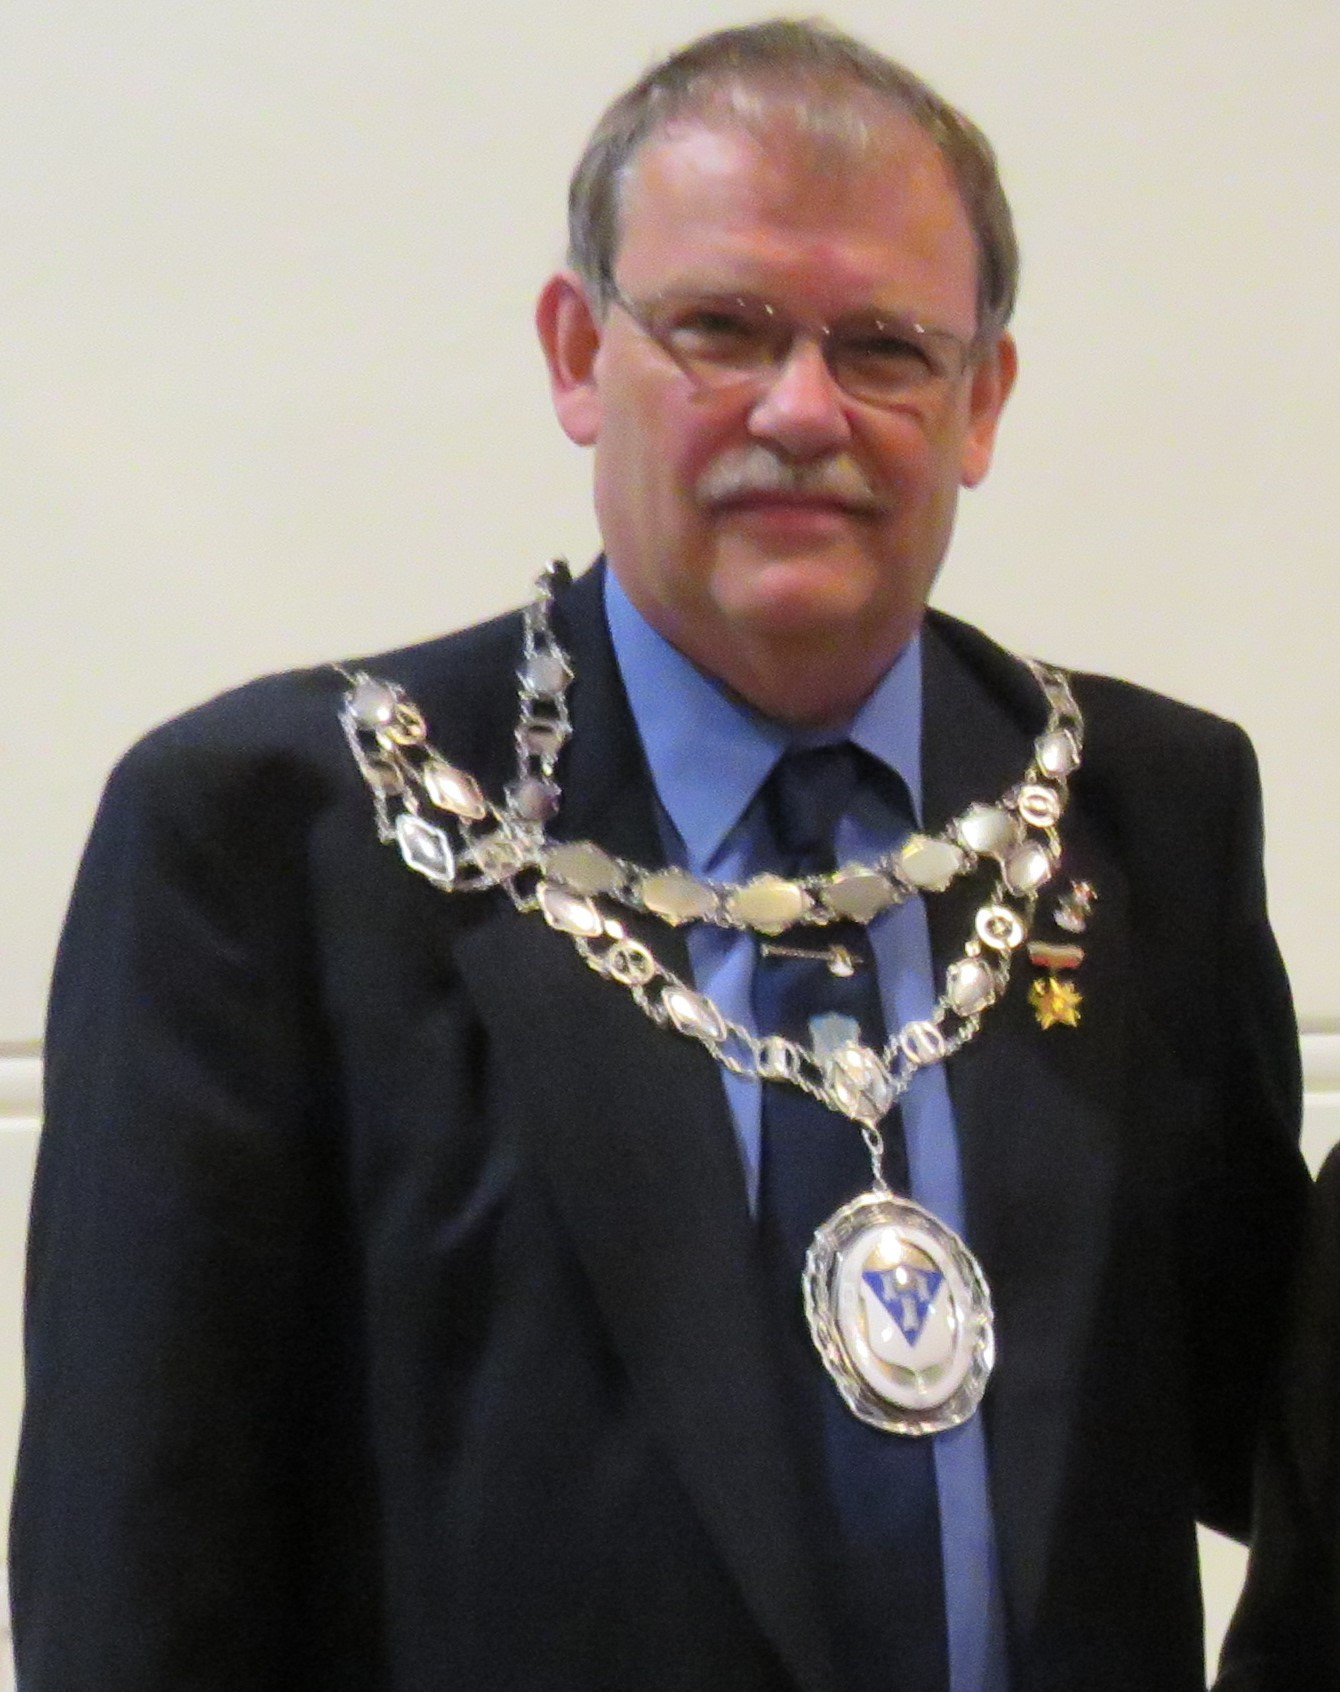 Otley's outgoing Town Mayor, Councillor Nigel Francis, has raised more than £31,000 for charity